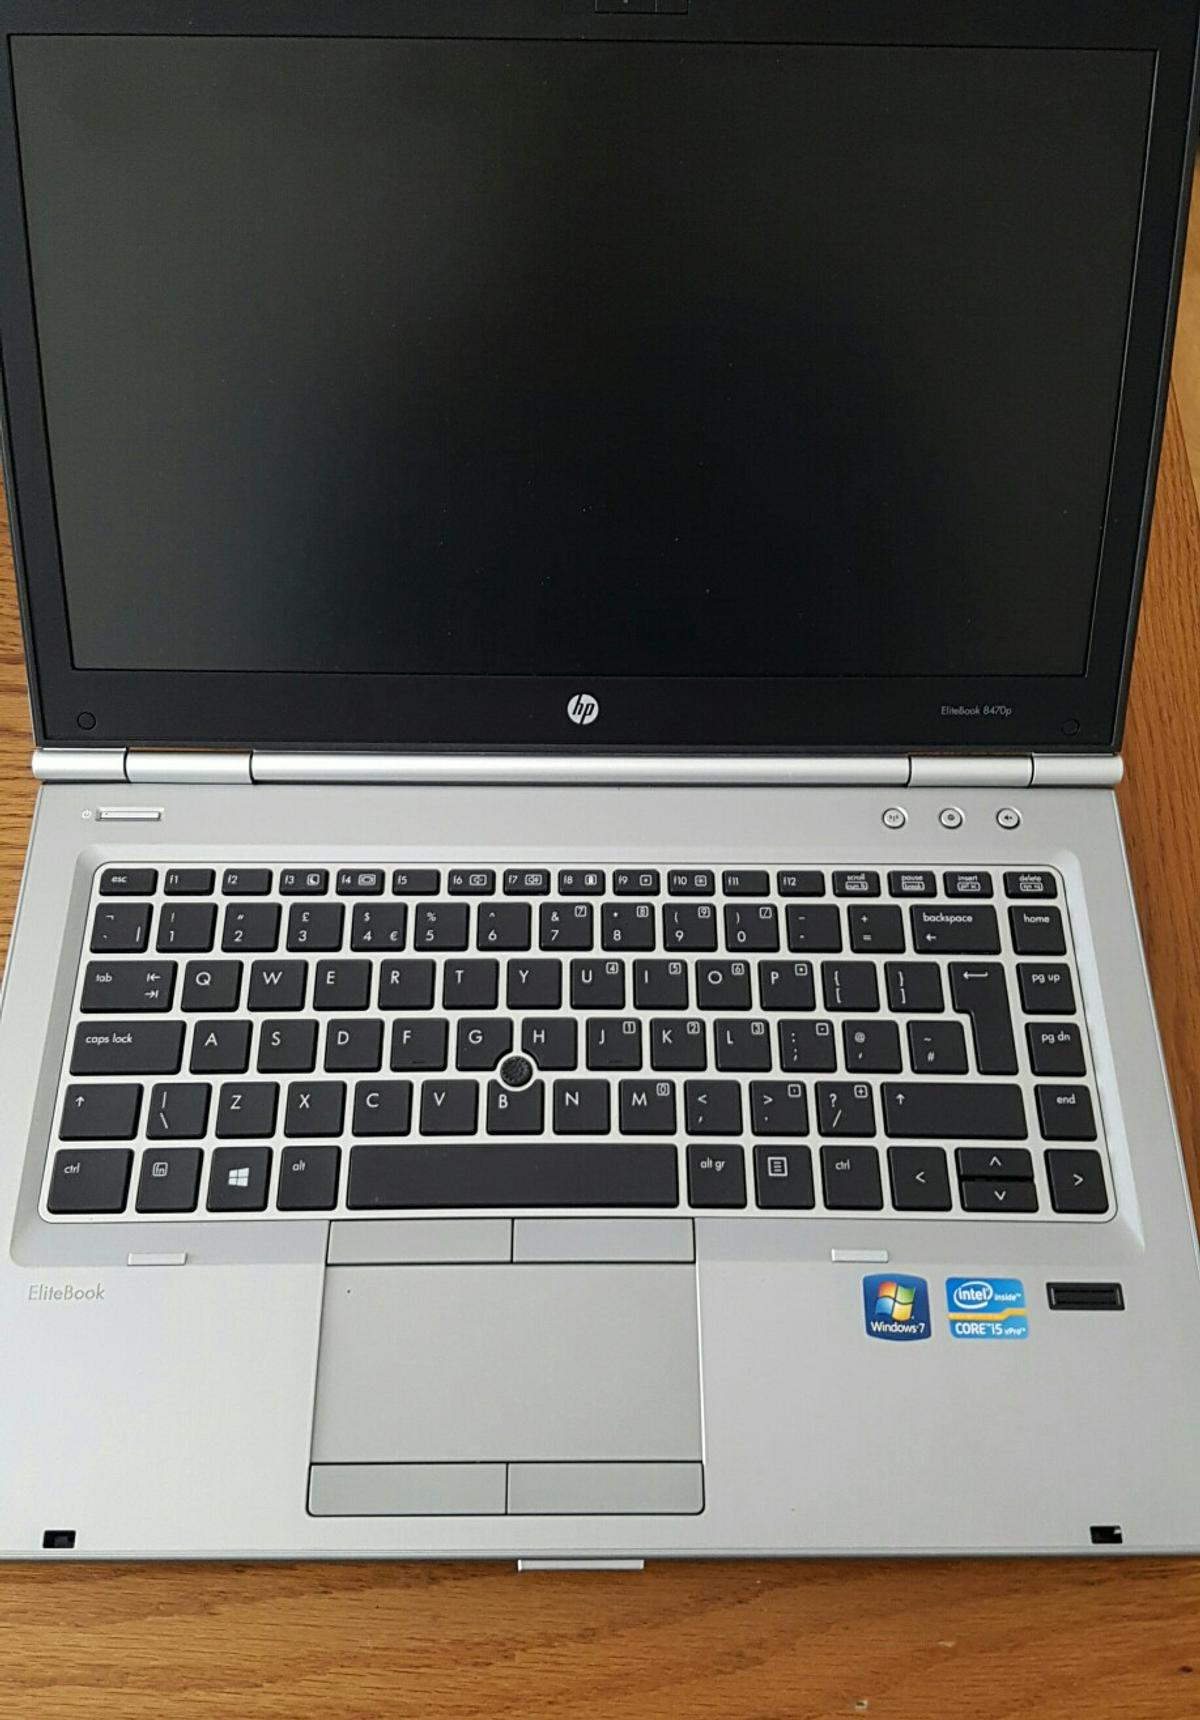 HP EliteBook 8470p Laptop Core i5 in B4 Aston for £220 00